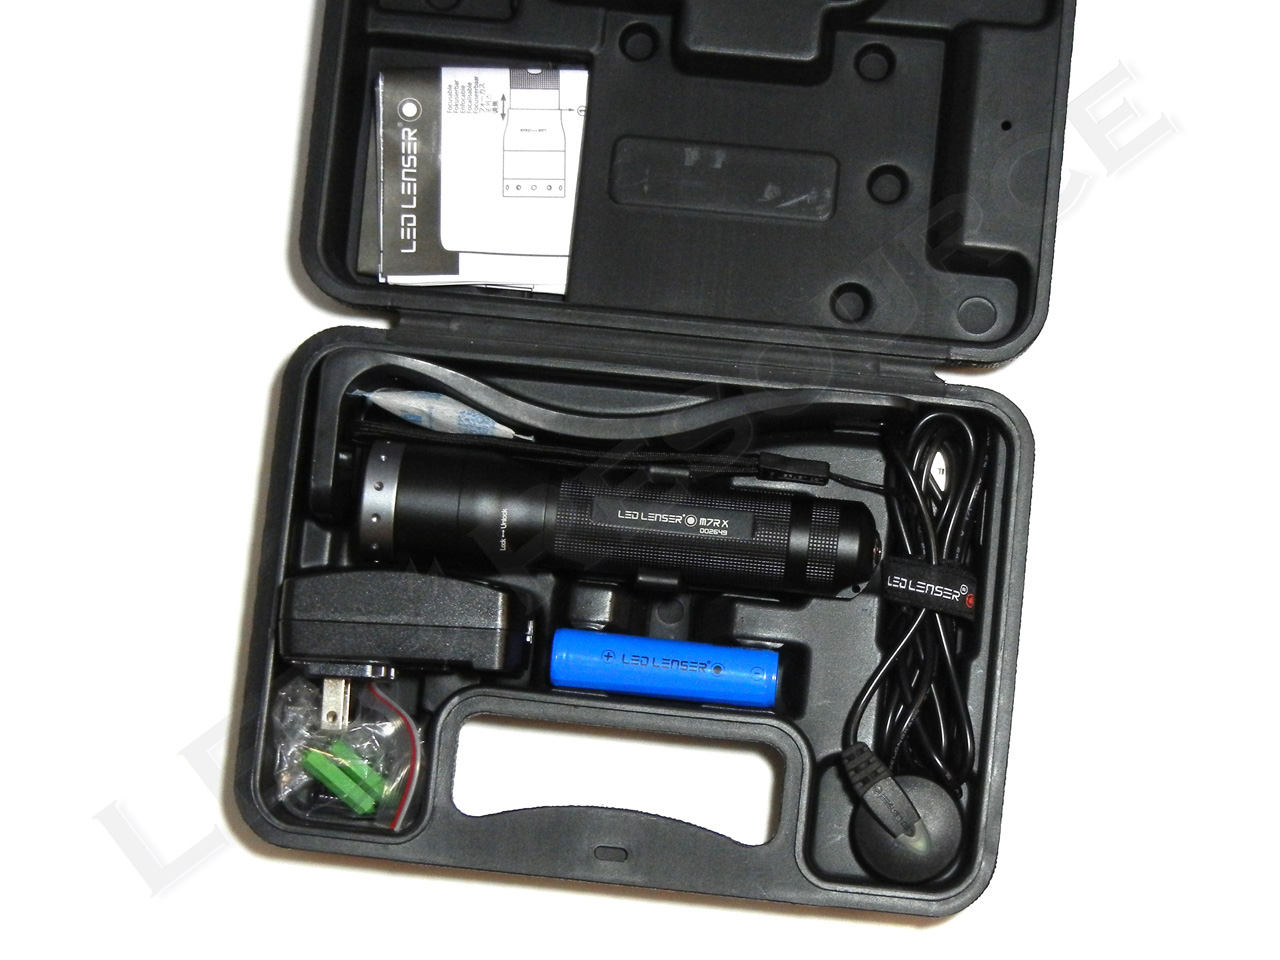 Led Lenser M7rx Rechargeable Flashlight Review Led Resource